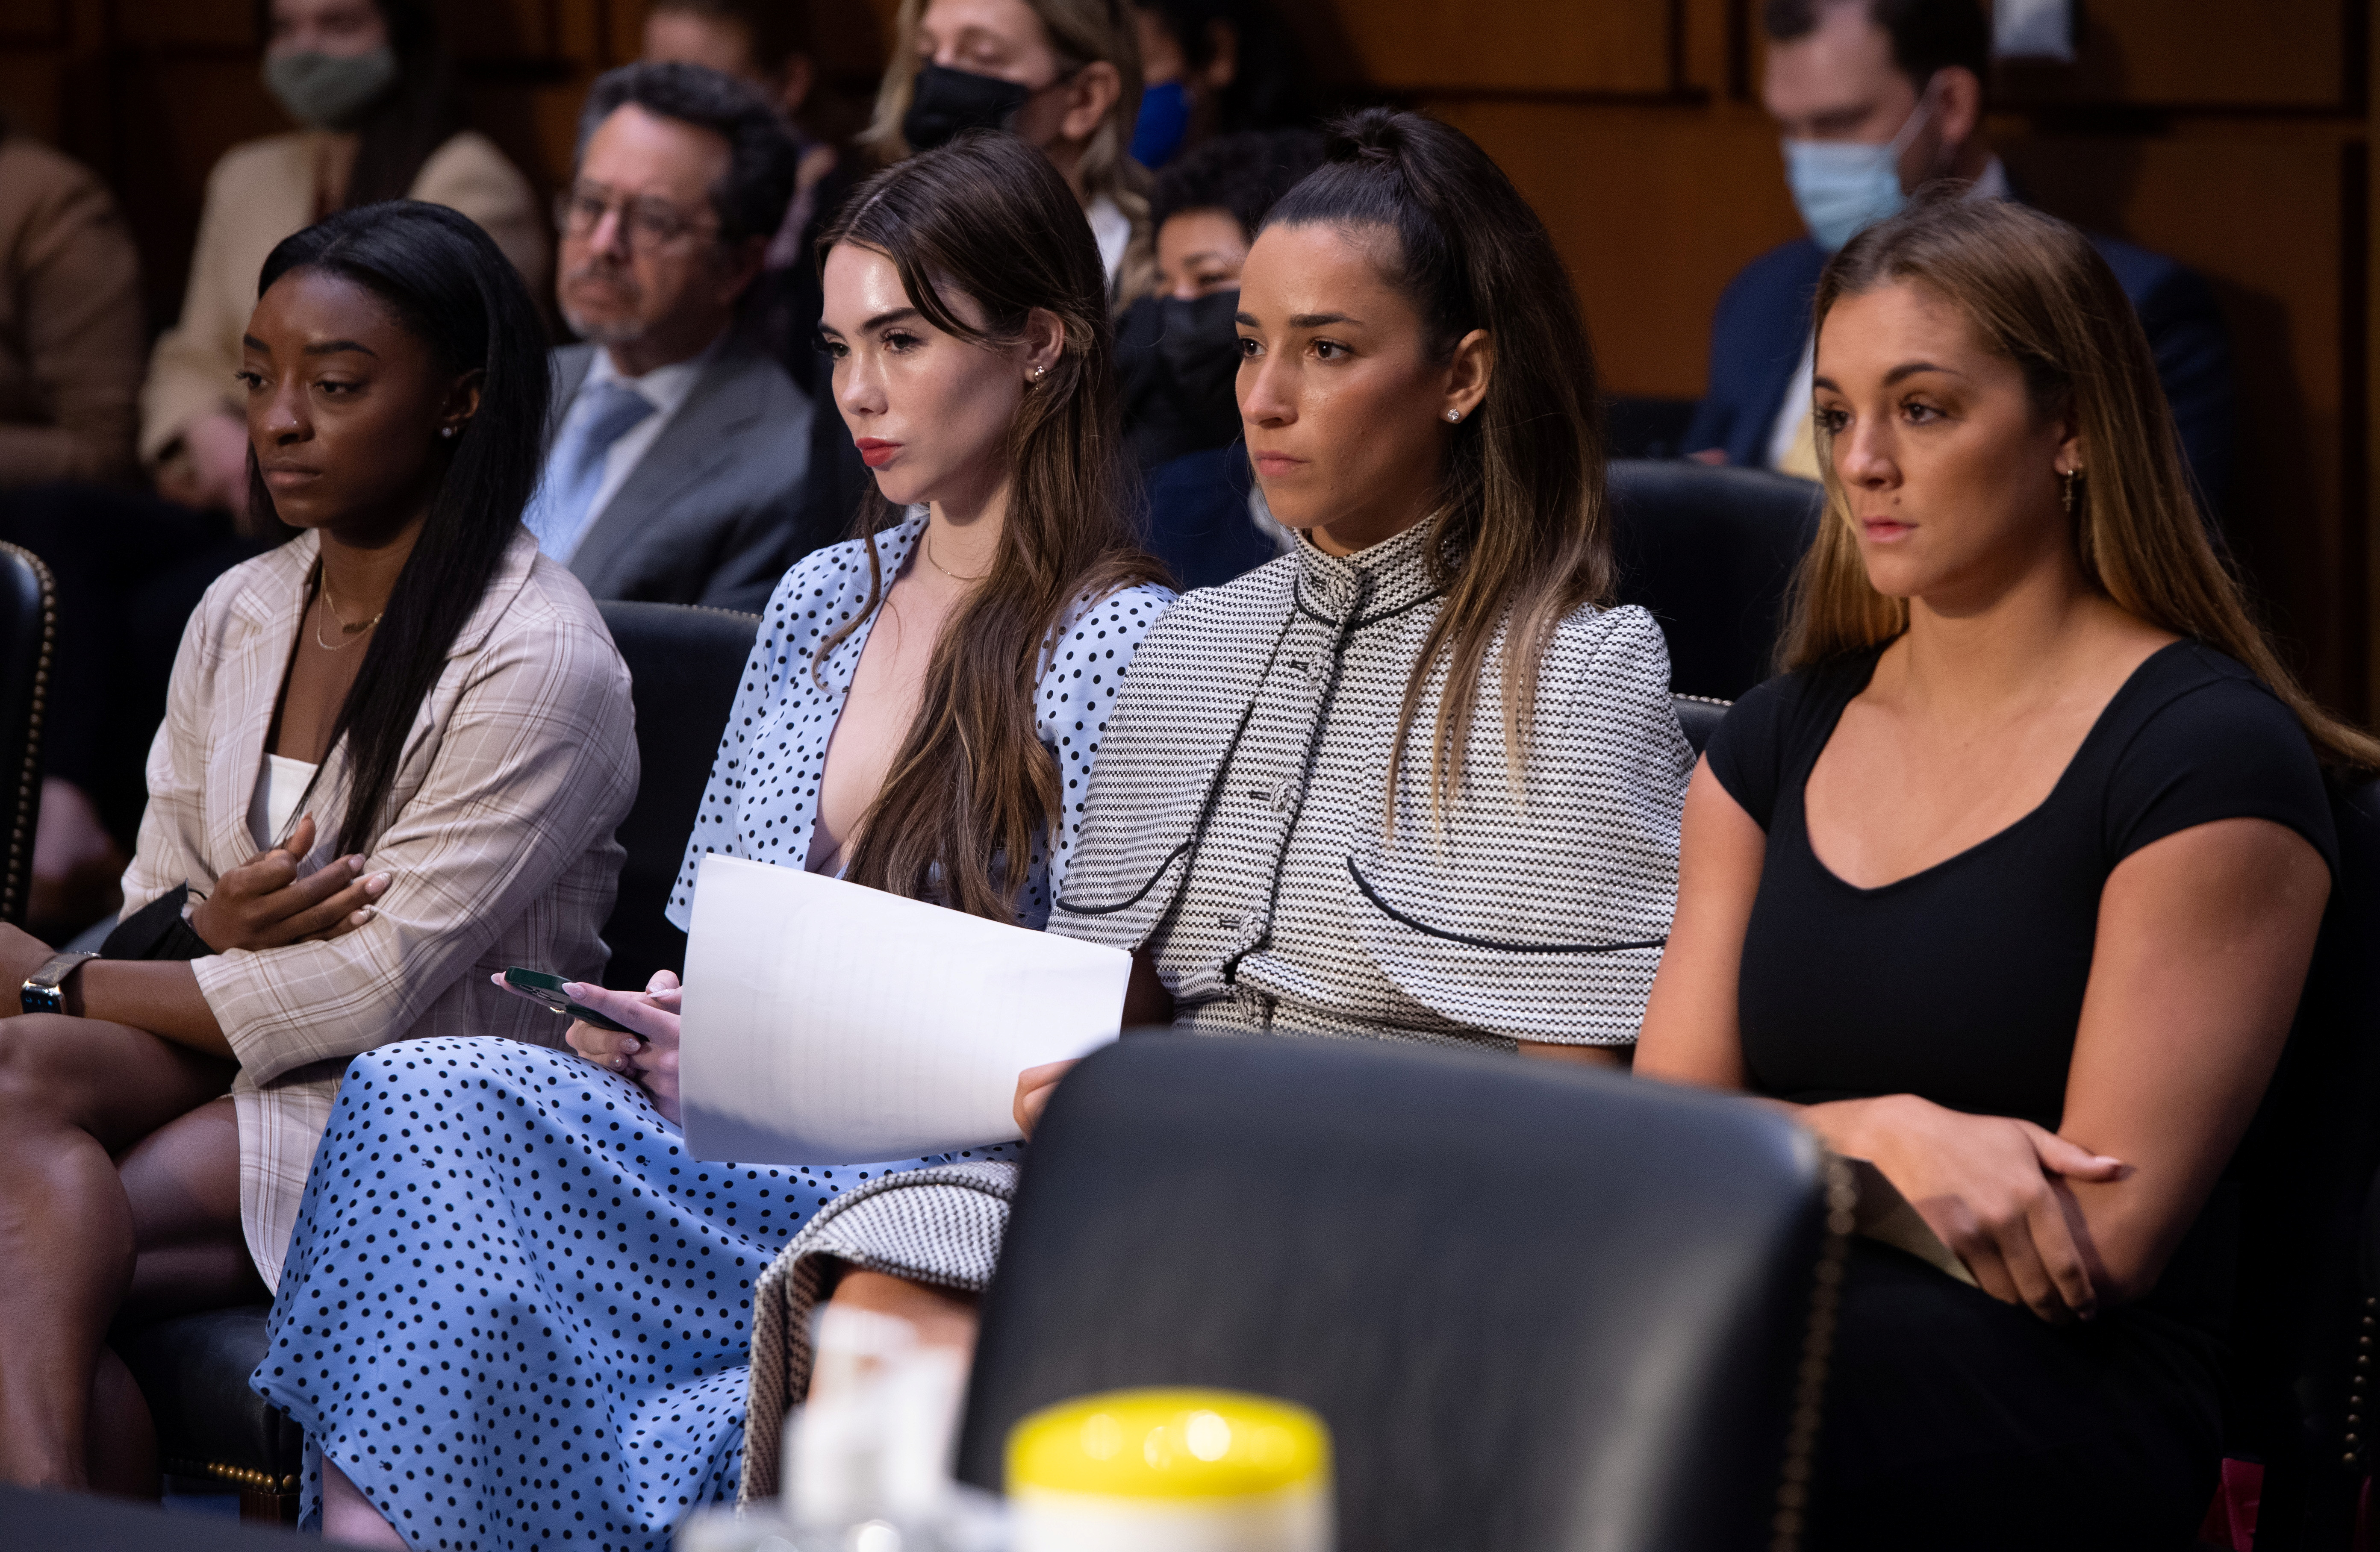 U.S. Olympic gymnasts Simone Biles, McKayla Maroney, Aly Raisman and Maggie Nichols arrive to testify during a Senate Judiciary hearing about the Inspector General's report on the FBI handling of the Larry Nassar investigation of sexual abuse of Olympic gymnasts, on Capitol Hill, in Washington, D.C., U.S., September 15, 2021. Saul Loeb/Pool via REUTERS